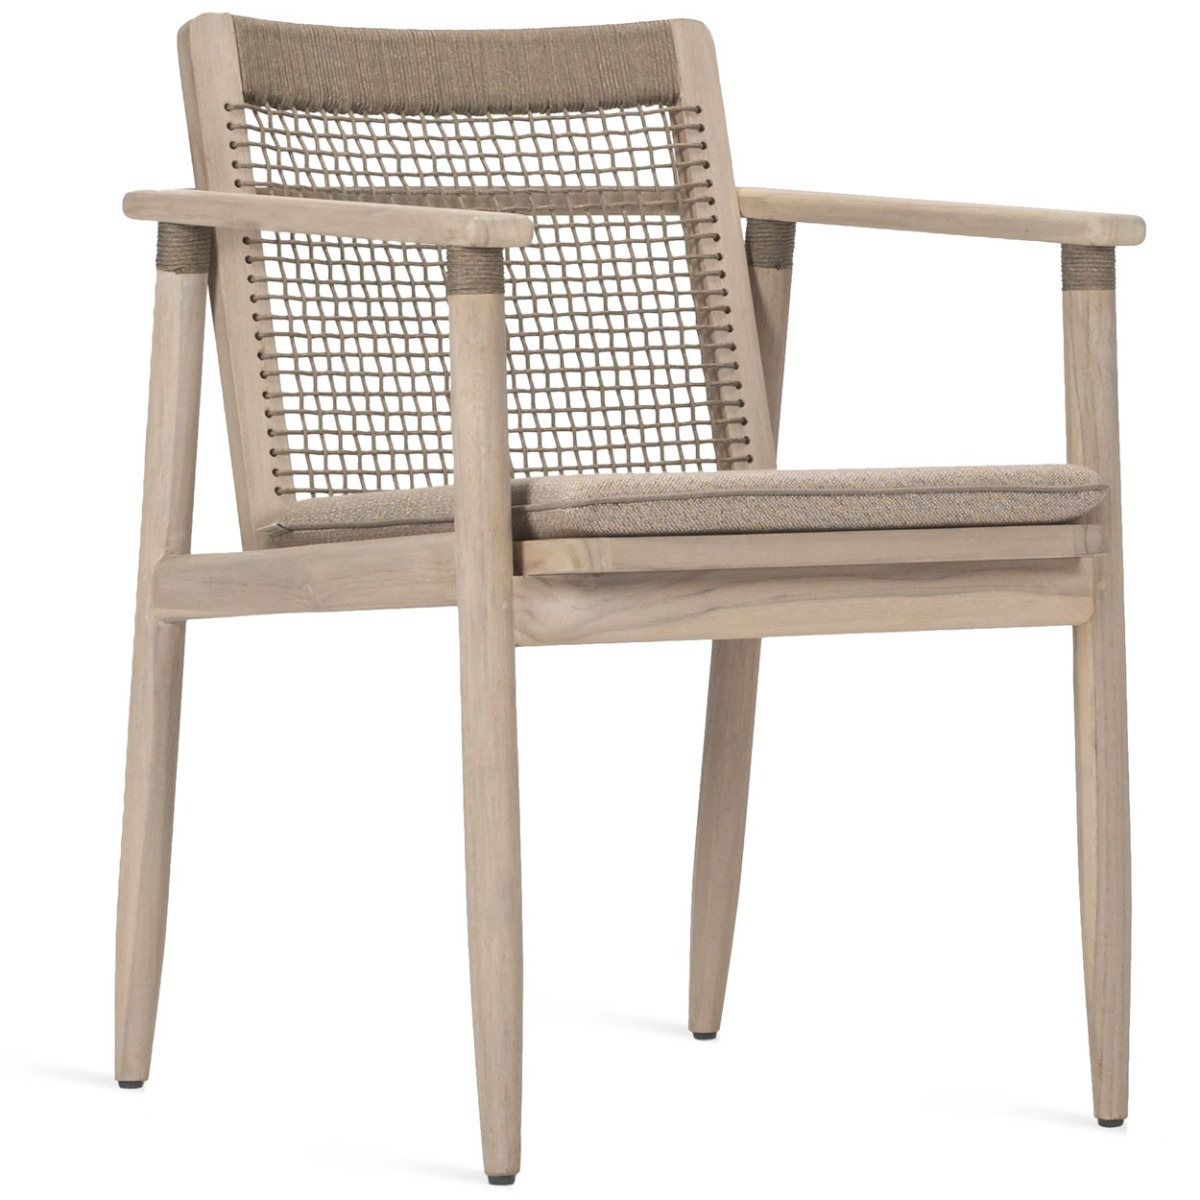 Vincent Sheppard David - Outdoor Dining Chair - Aged Teak - Inclusief Zitkussen